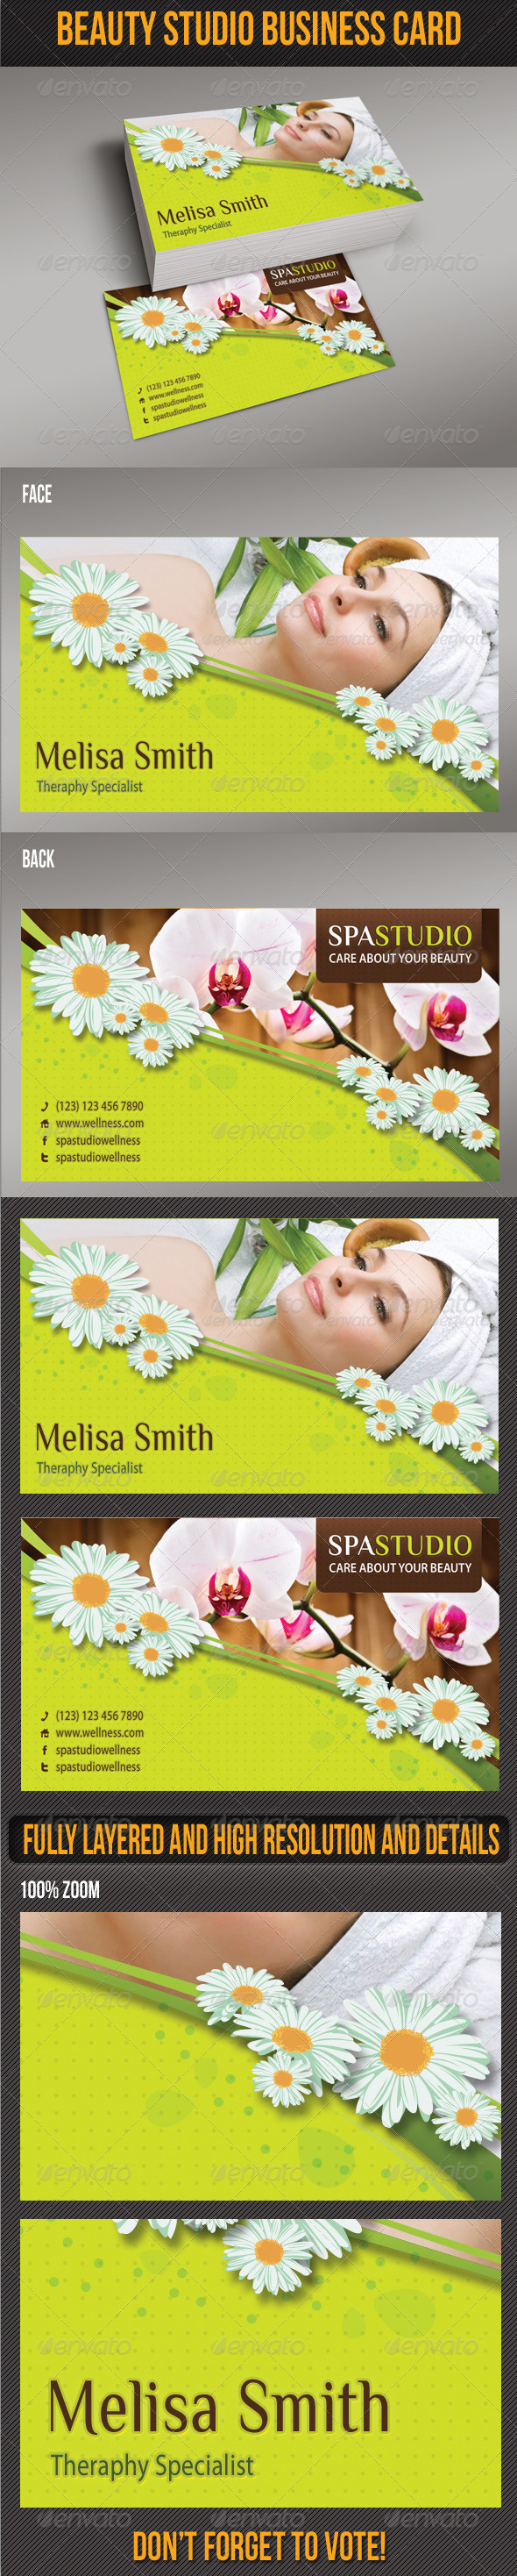 Spa Studio Business Card 03 - Creative Business Cards